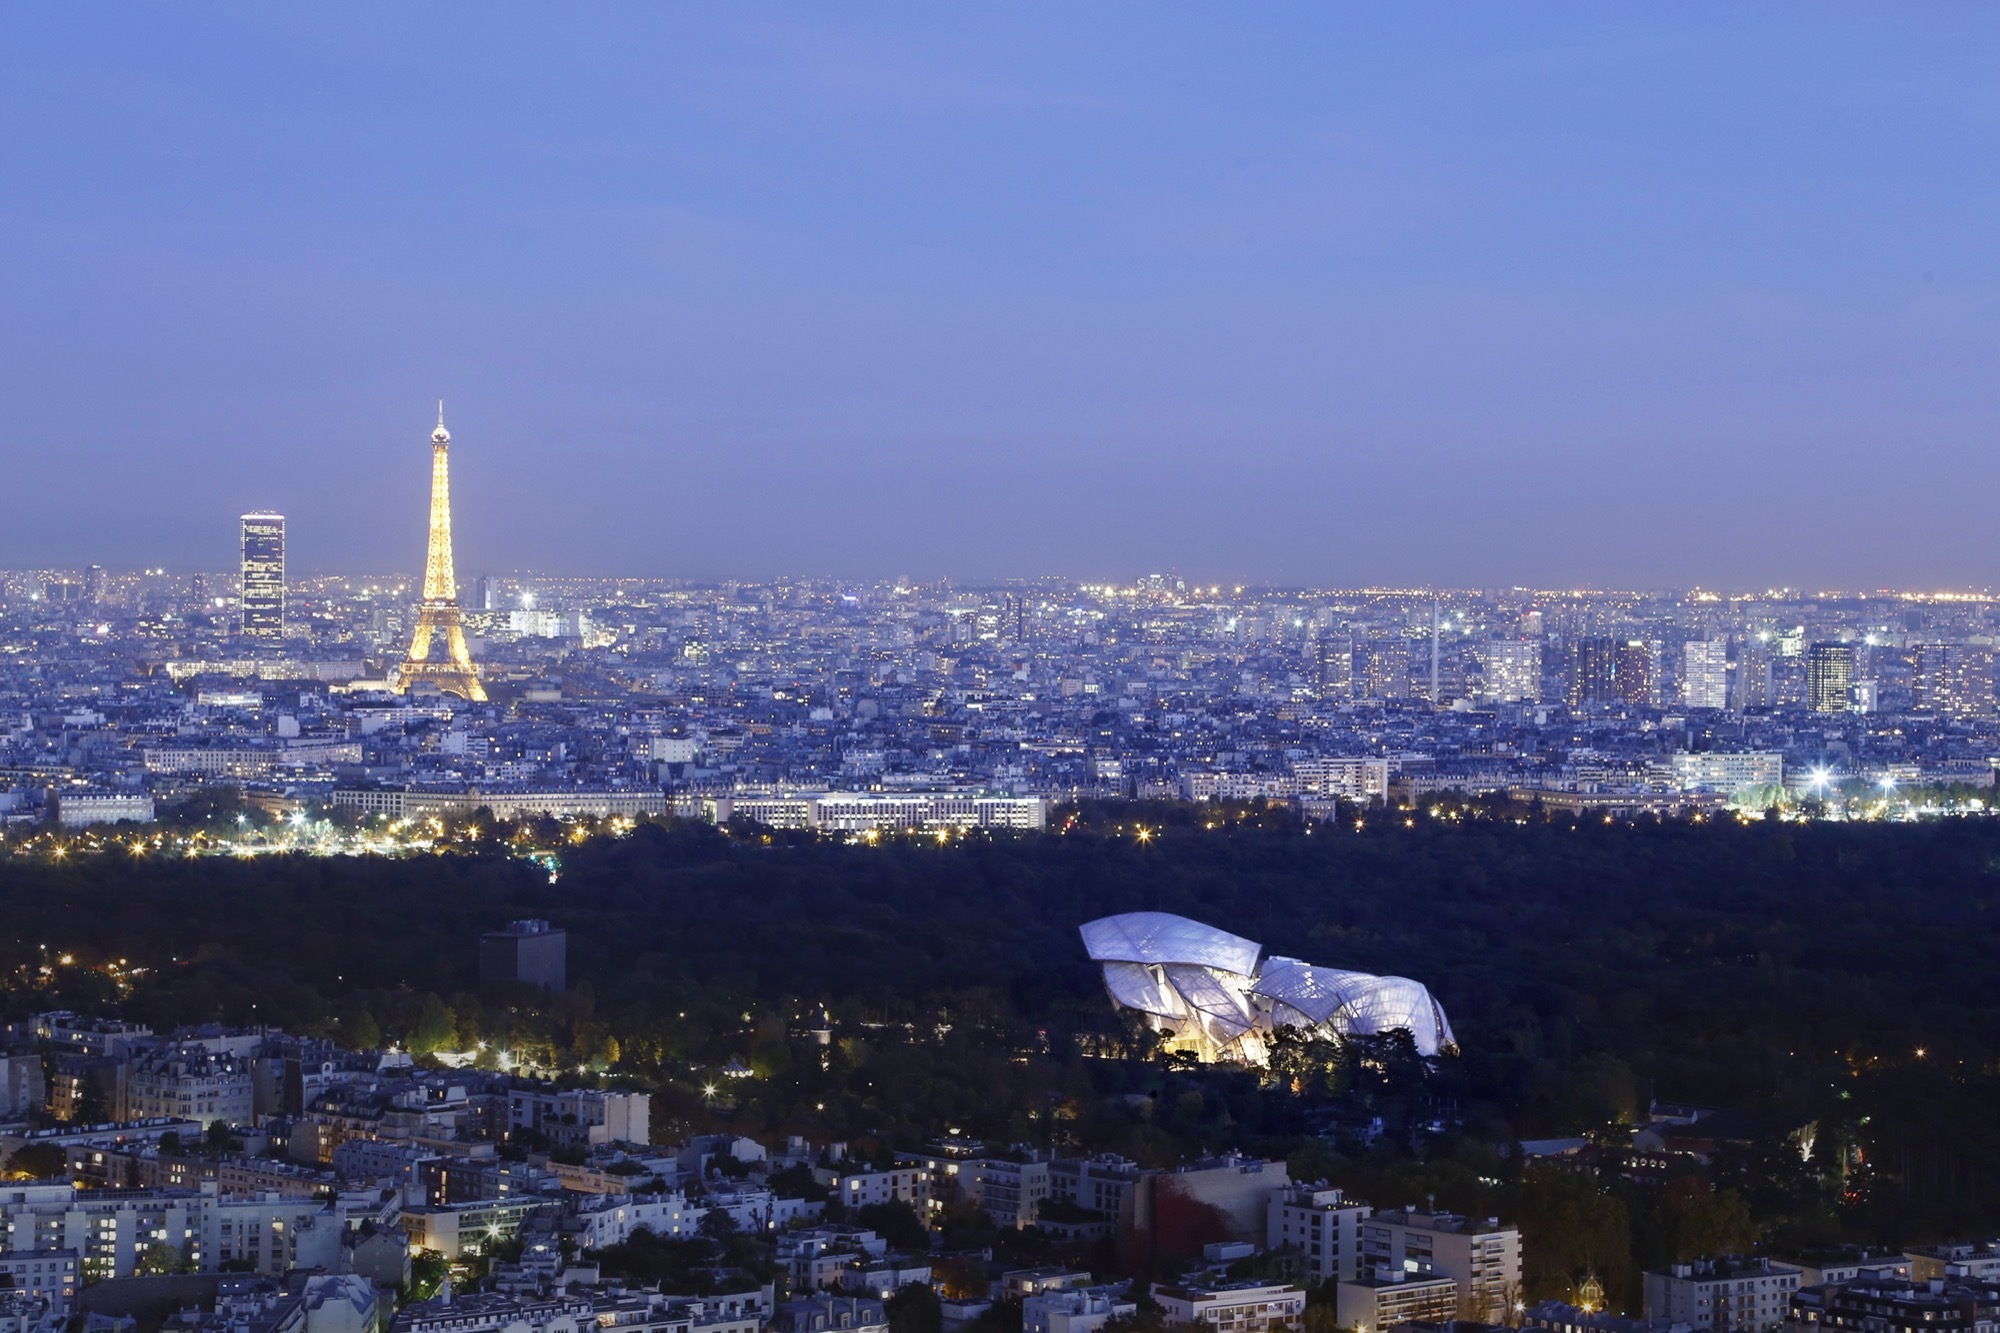 nightscape of paris france seen from a distance with the louis vuitton foundation in the. Black Bedroom Furniture Sets. Home Design Ideas